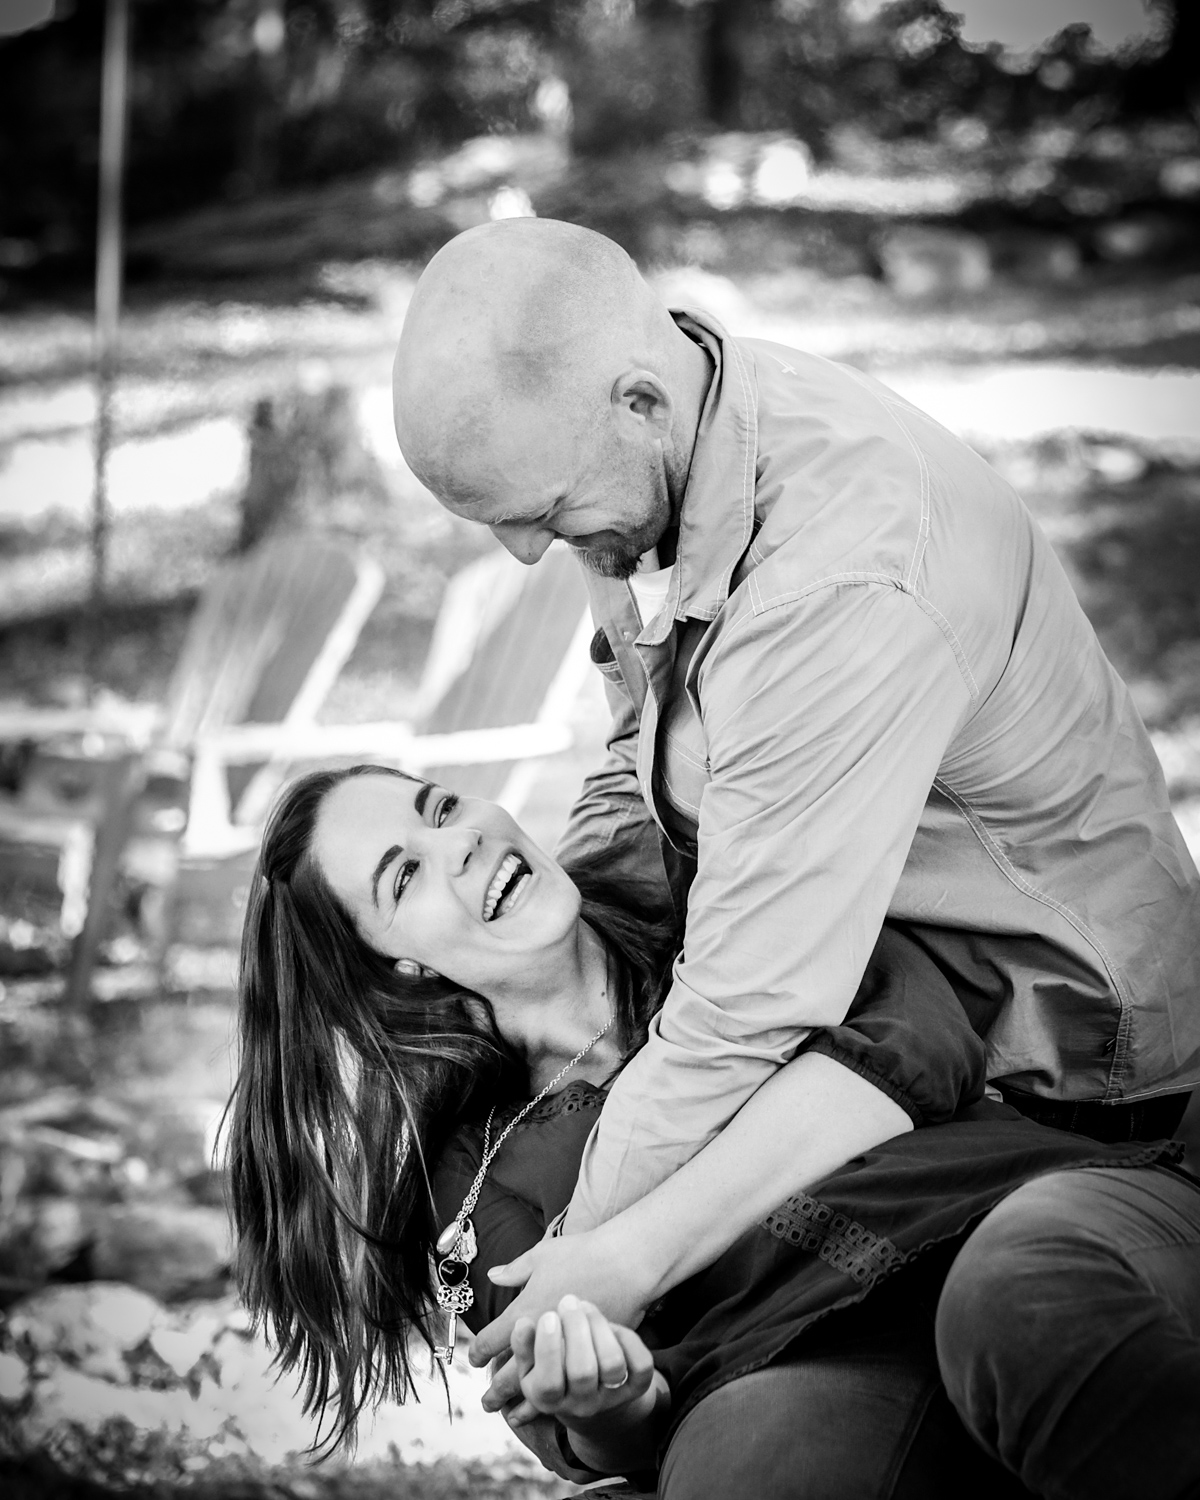 Candid couples photography fun ways to photograph couples that are a bit awkward